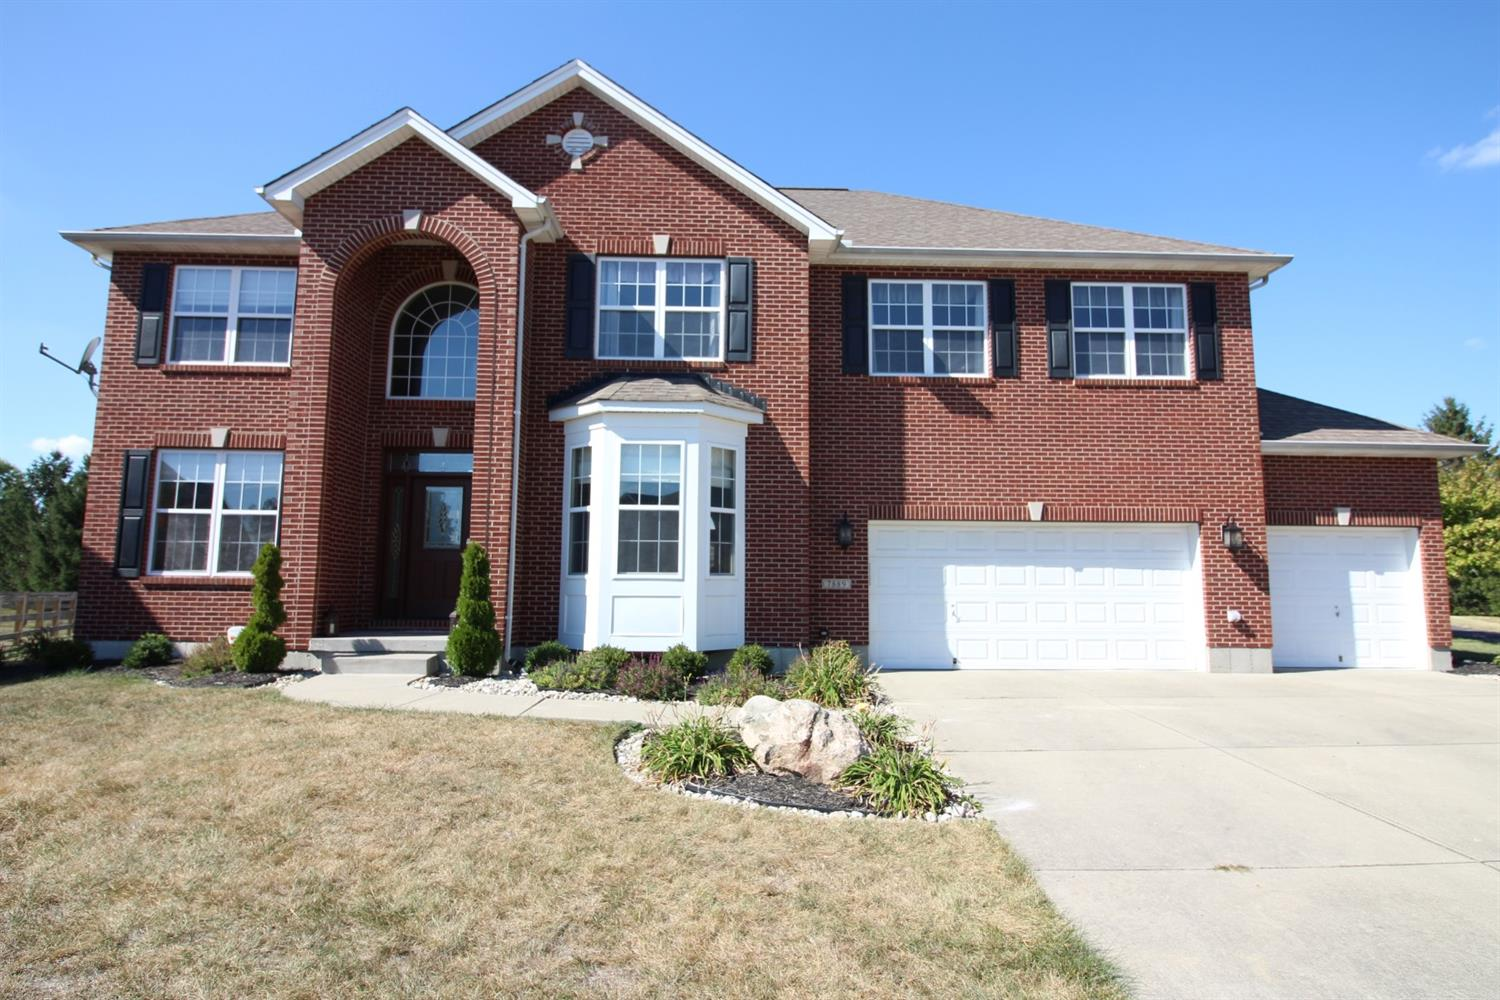 Photo of 7889 Threshing Court, West Chester, OH 45069